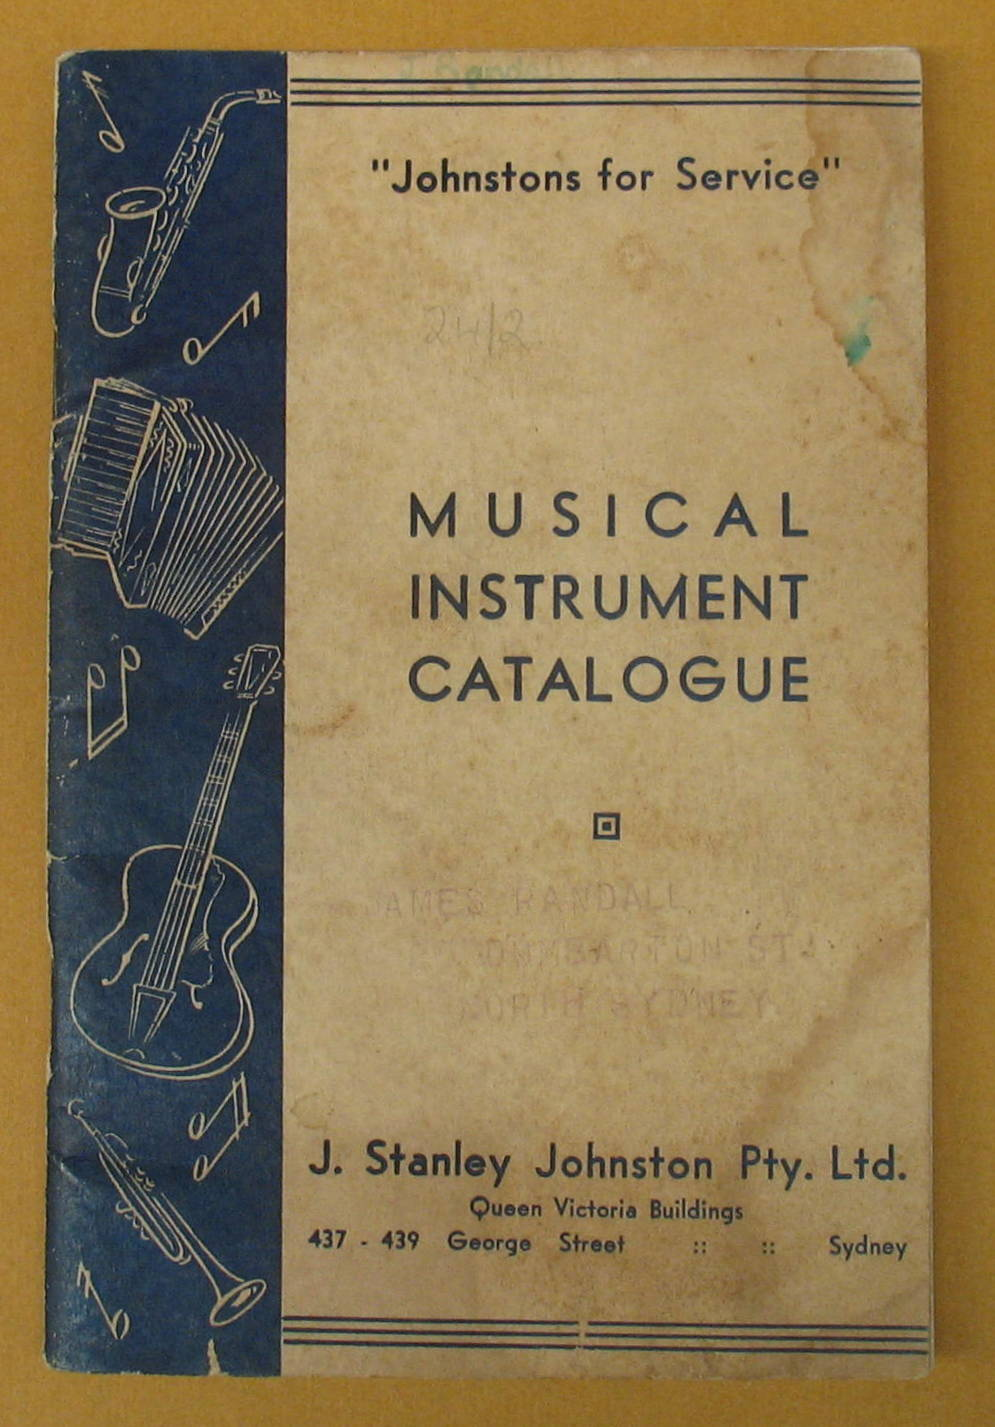 Image for Musical Instrument Catalogue: J. Stanley Johnston Pty. Ltd.